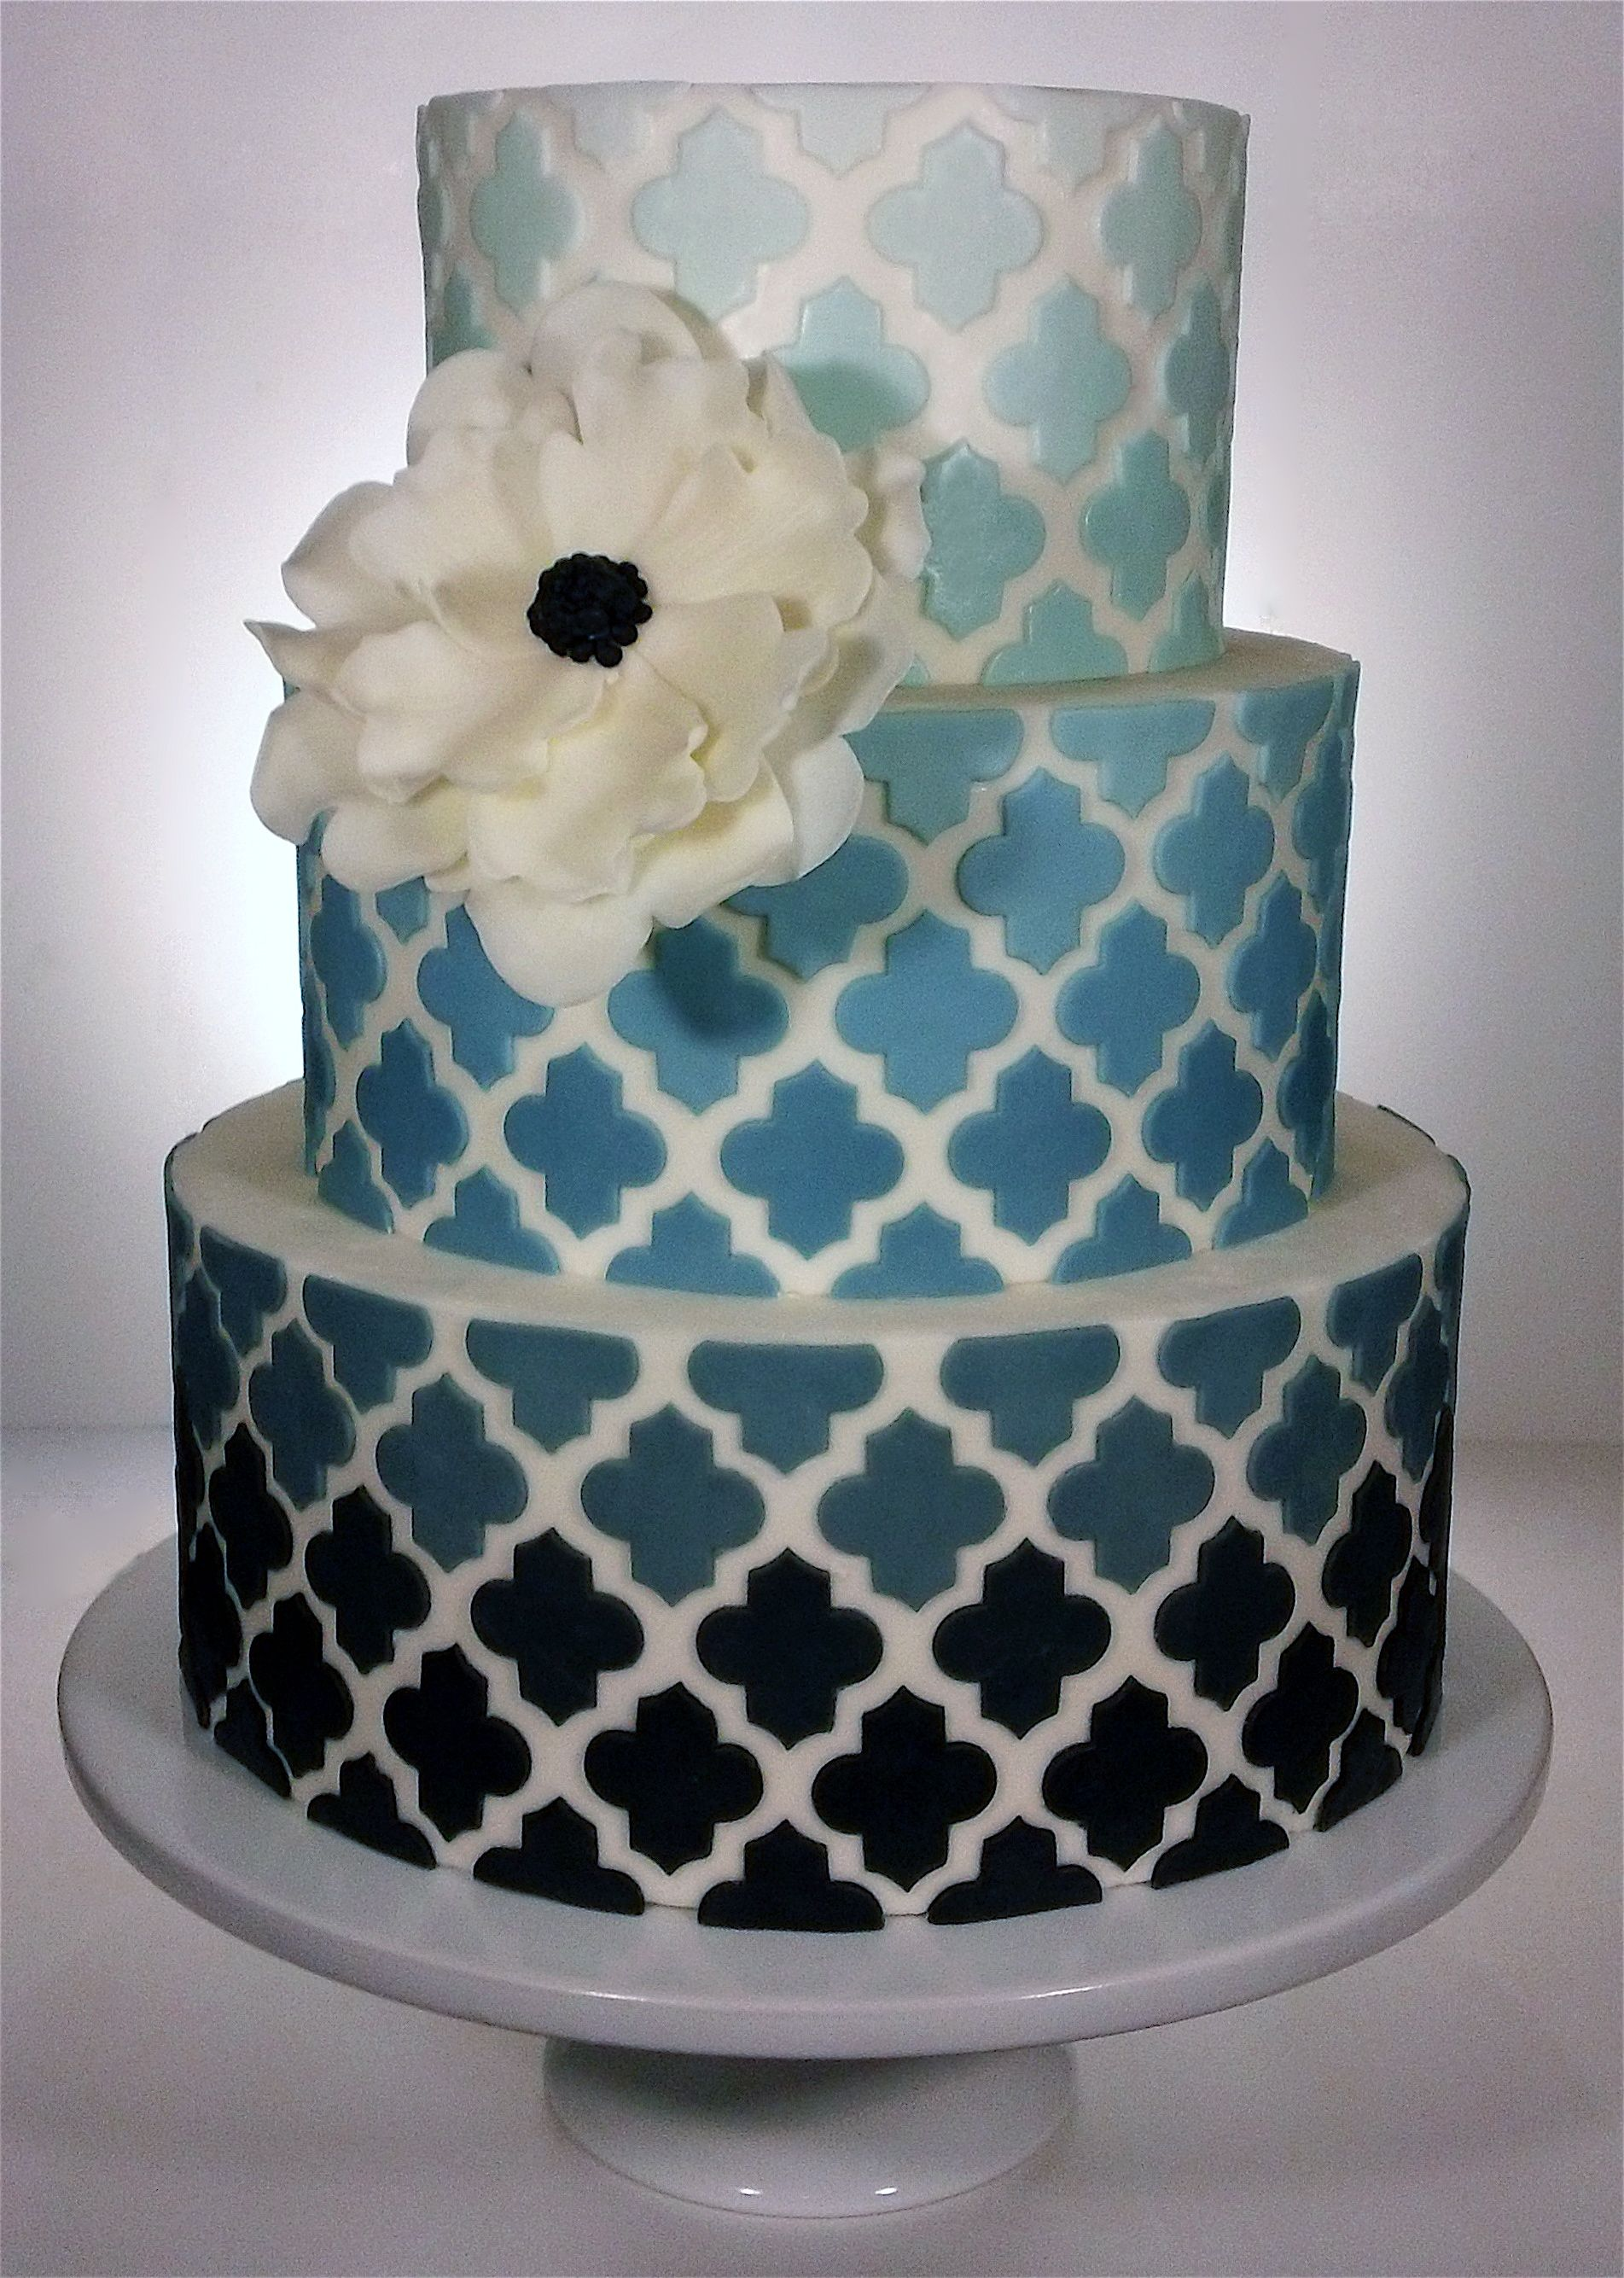 Fondant covered cake with modeling chocolate decorations (cutters ...